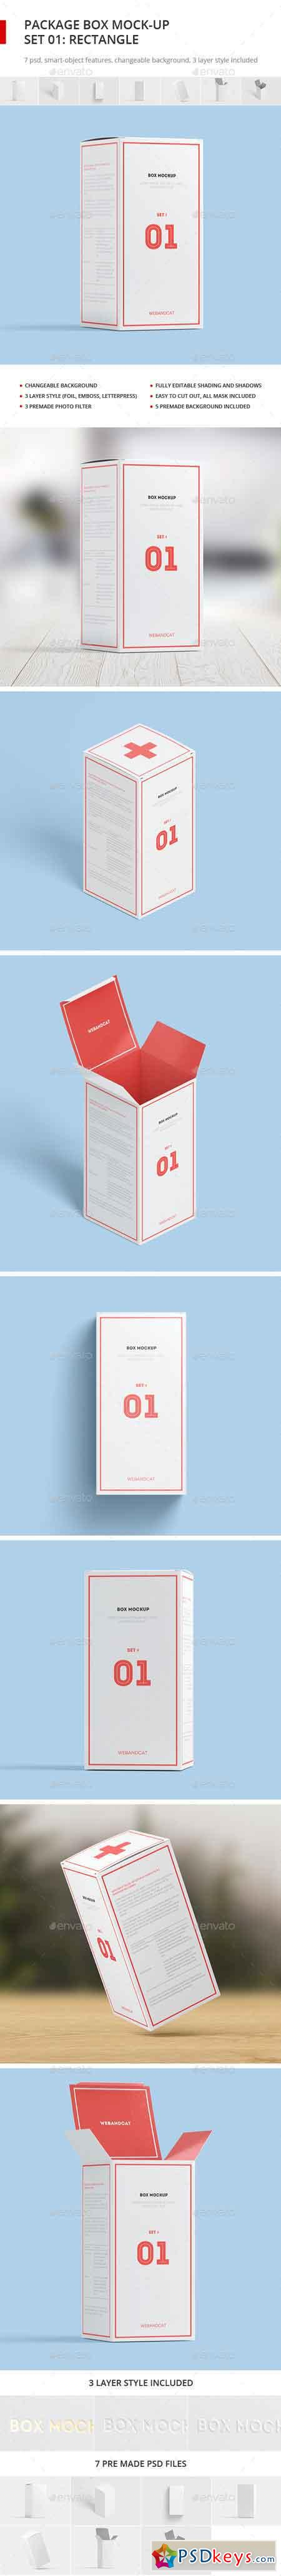 Download Package Box Mock Up Set 1 Rectangle Box 17701125 Packaging Mockup Box Mockup Mockup Design